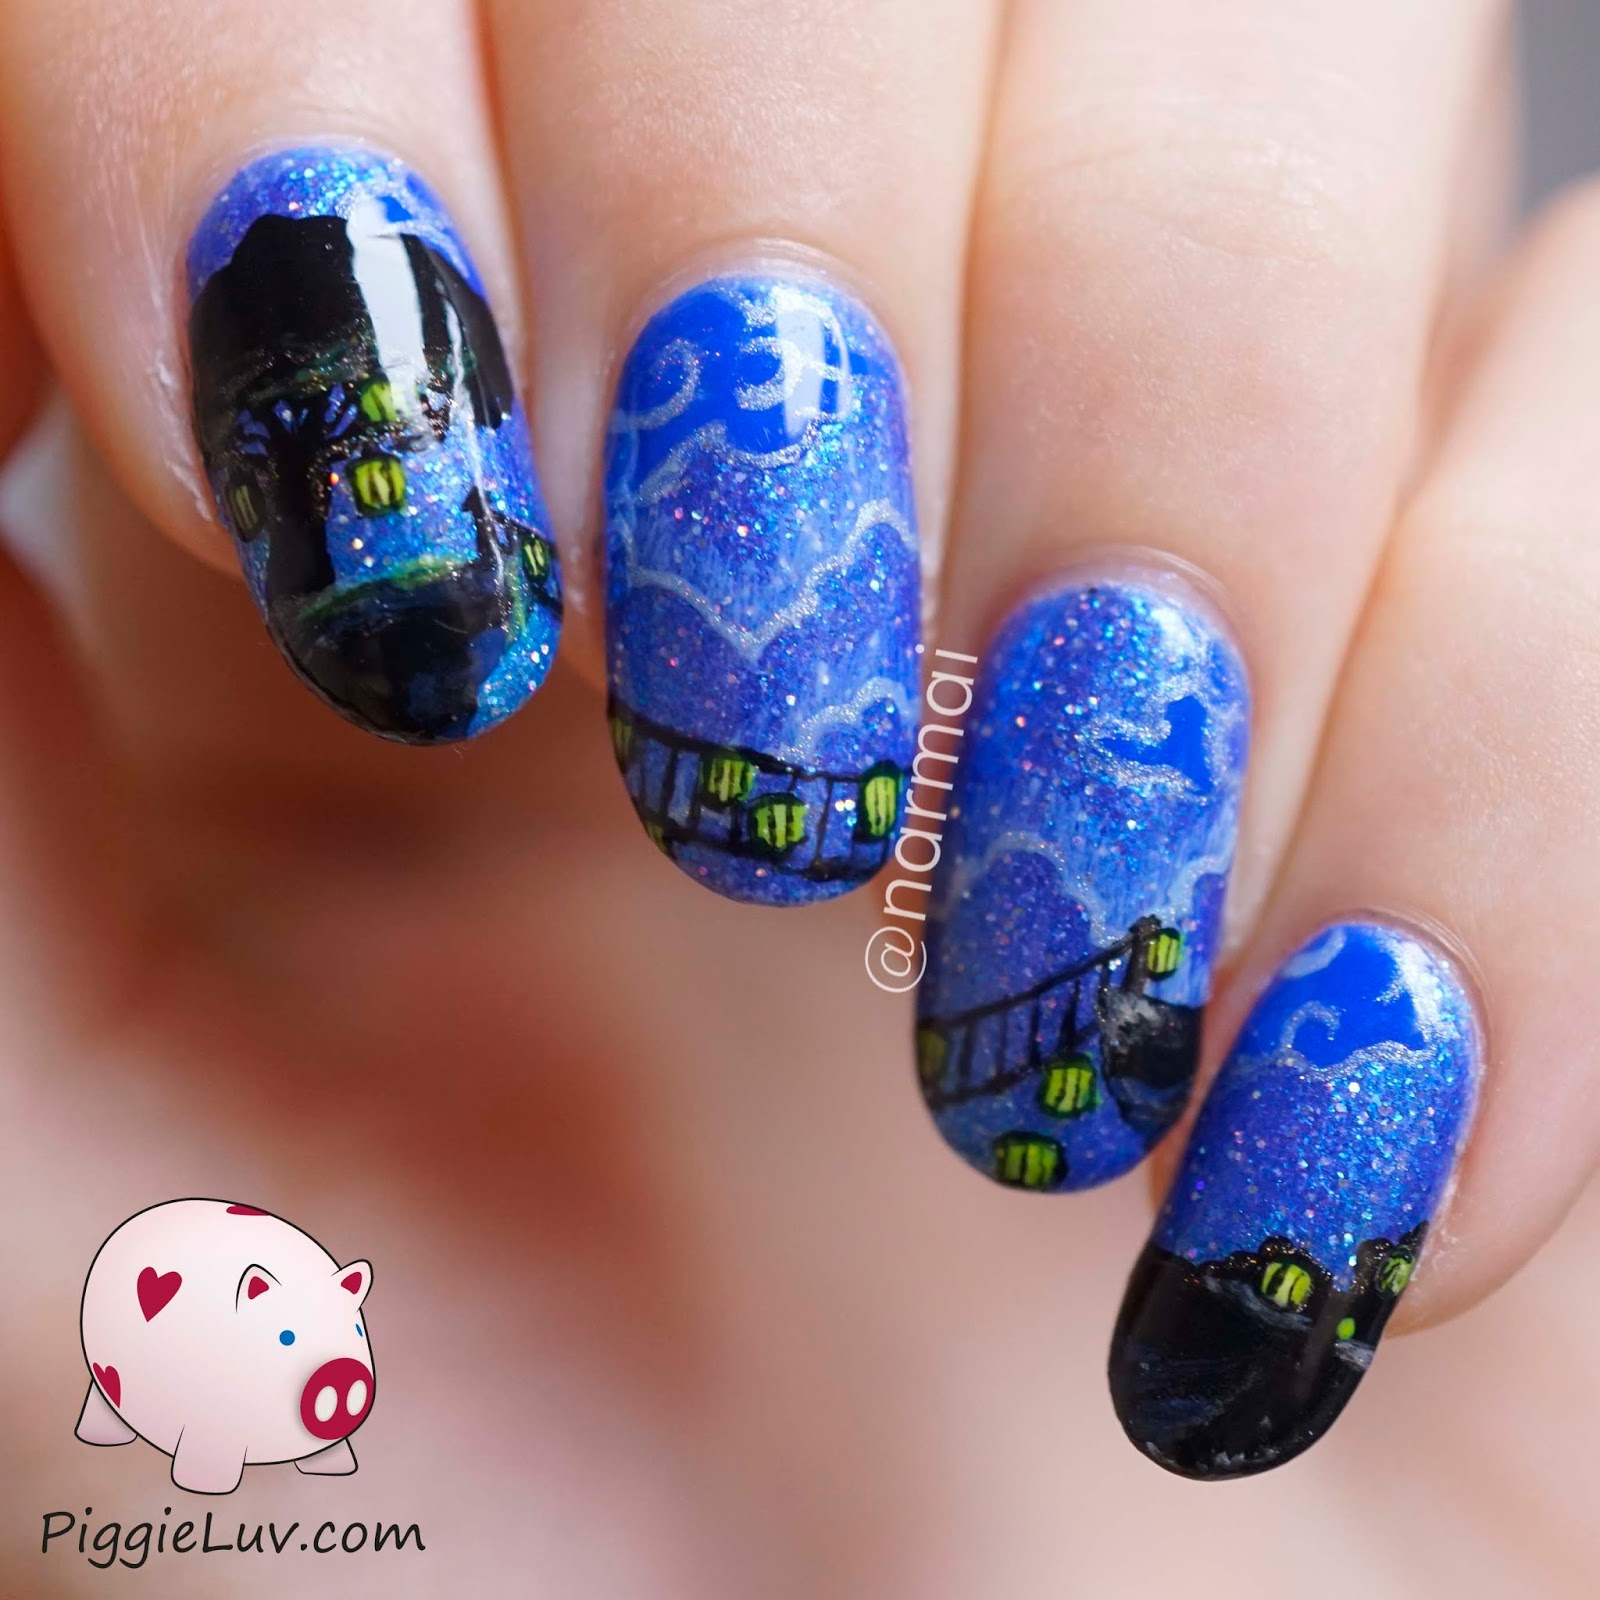 PiggieLuv: Glow In The Dark Bridge Nail Art (painted With